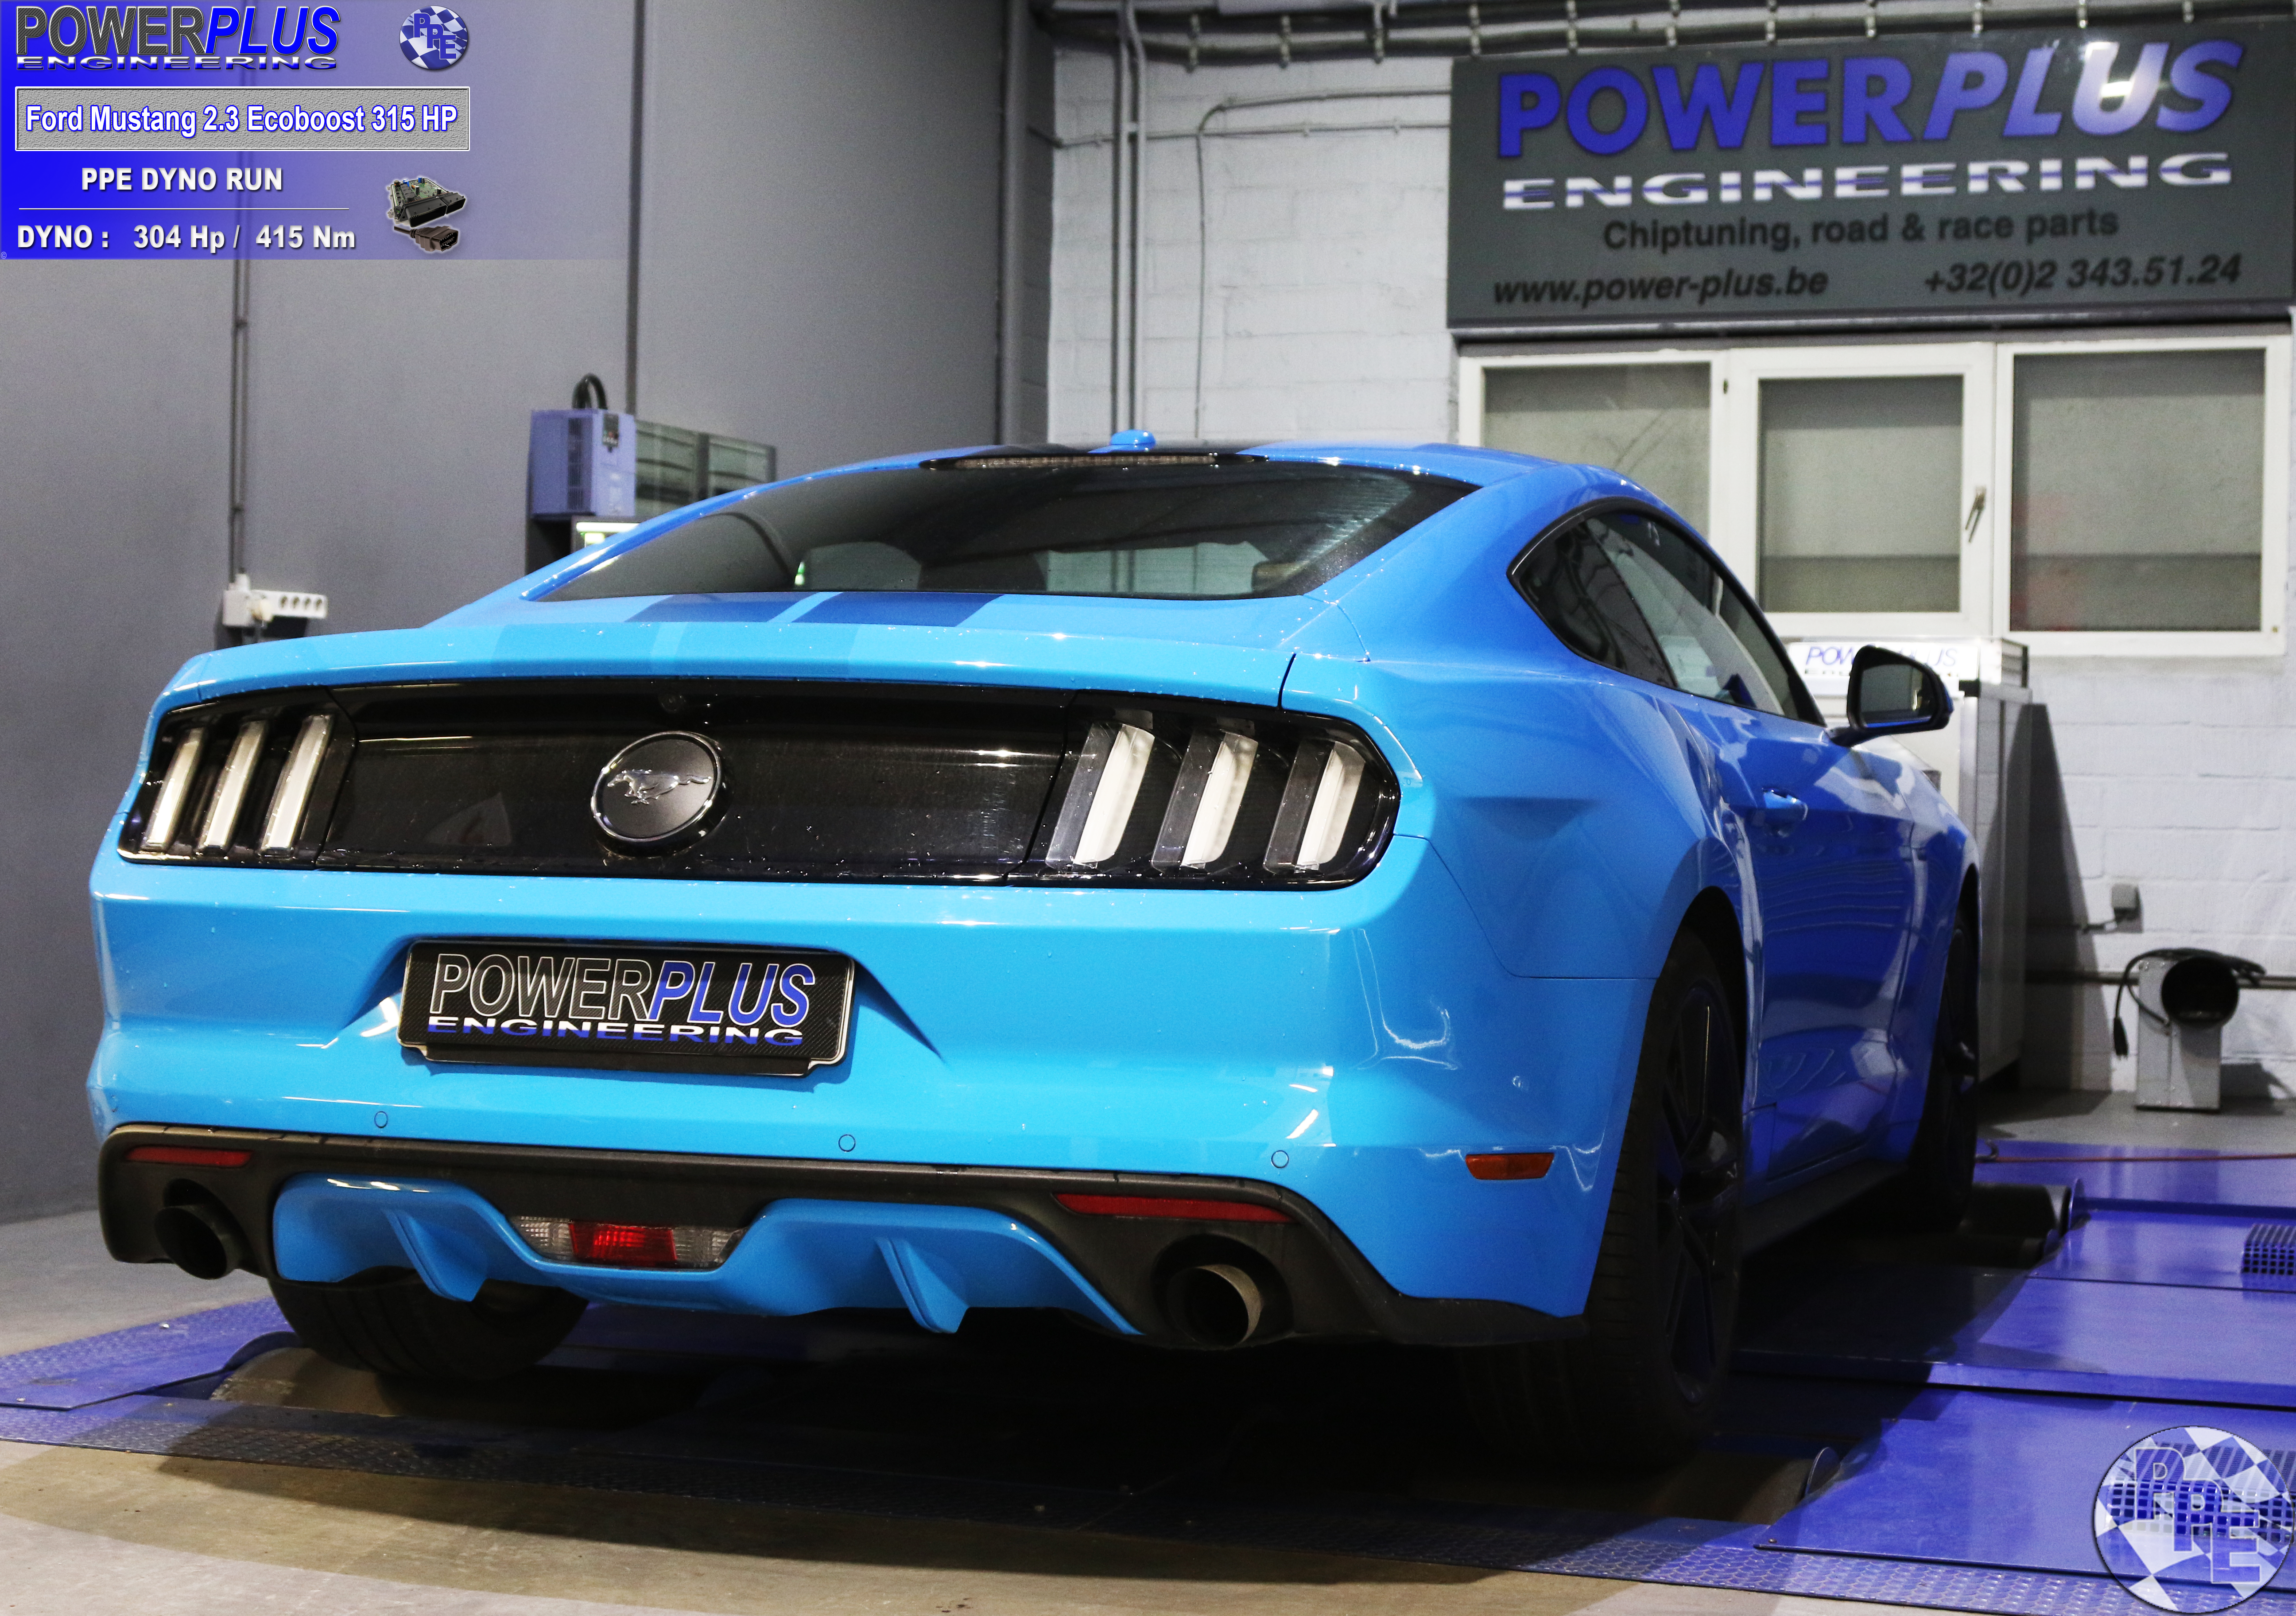 Ford Mustang 2 3 Ecoboost 315 Hp PPE DYNO RUN | Power Plus